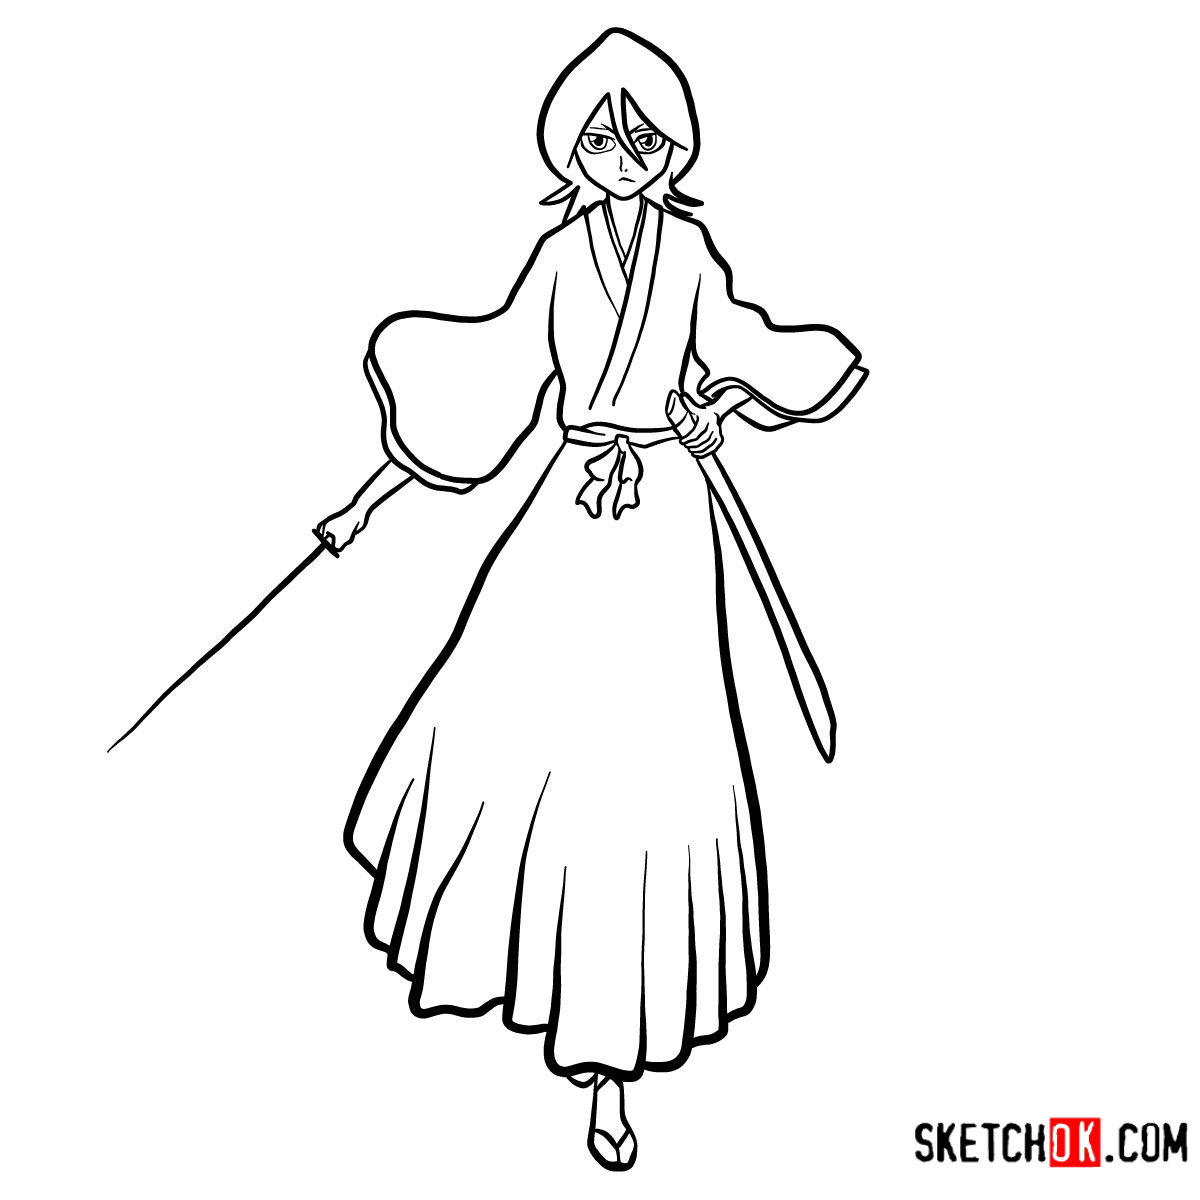 How to draw Rukia Kuchiki full growth | Bleach